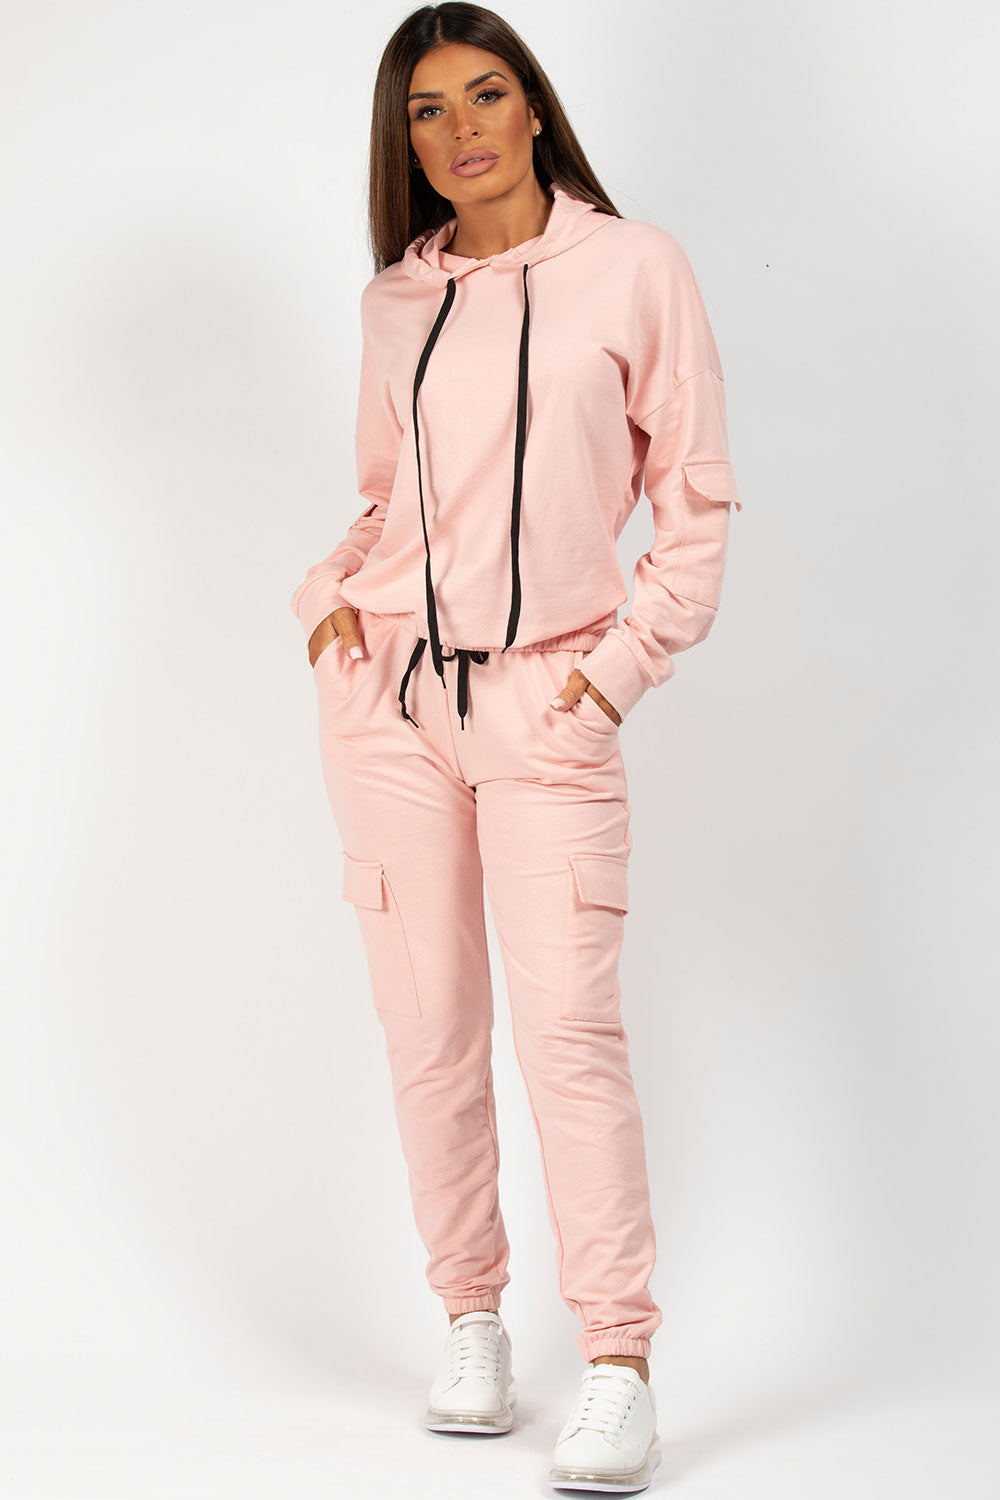 pink hooded loungewear co ord styledup fashion